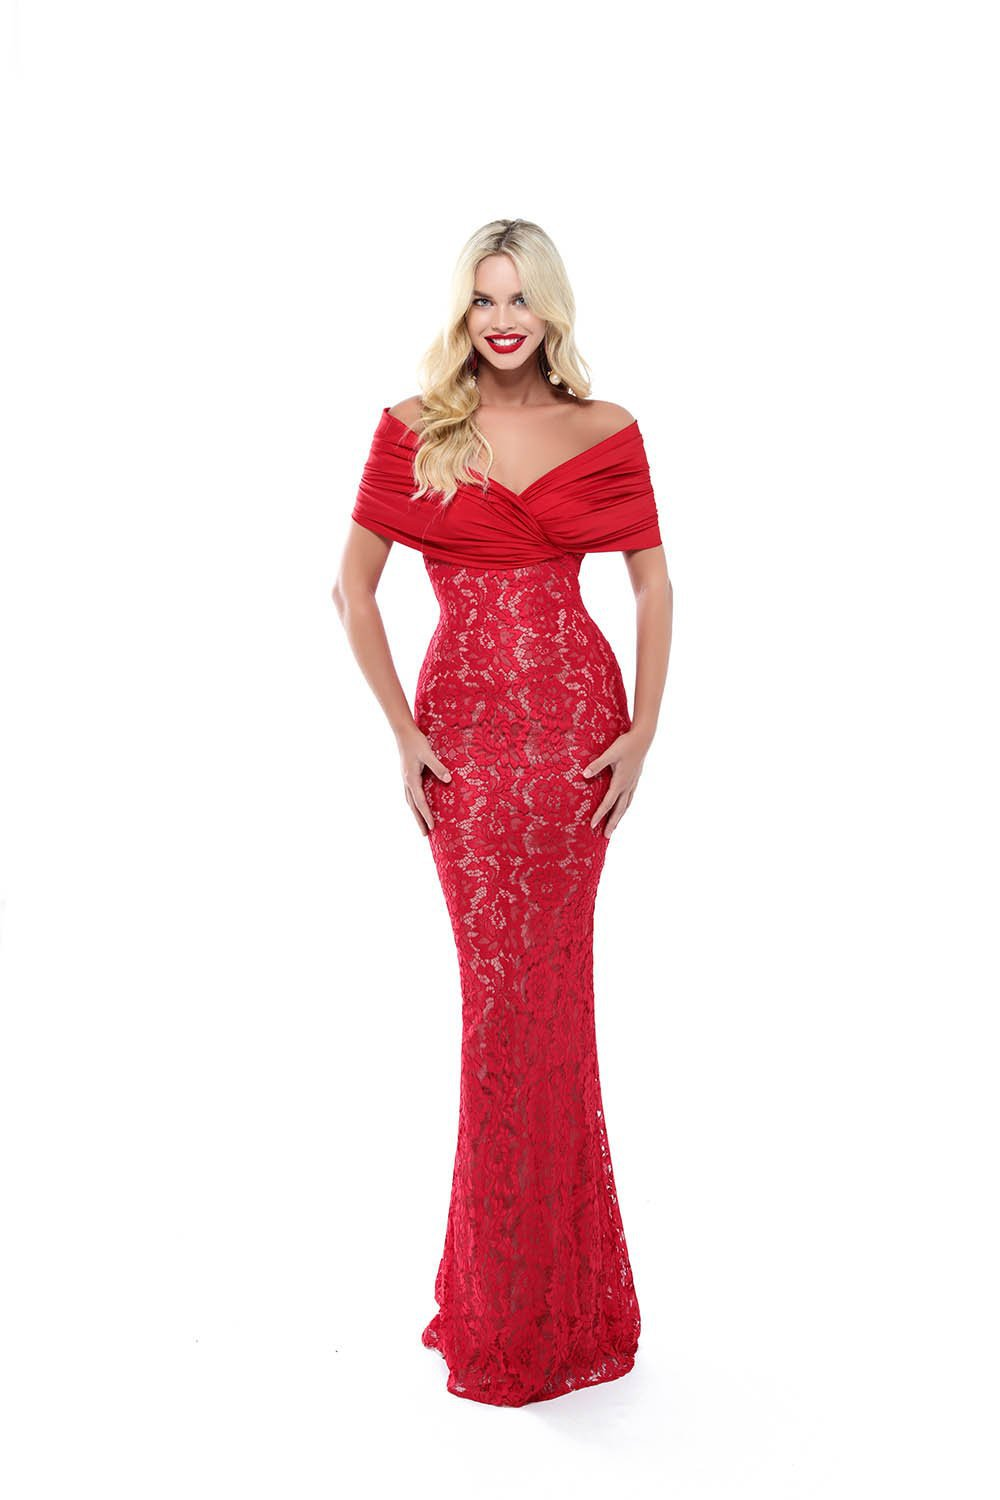 Tarik Ediz - 50506 Ruched Off Shoulder Lace Mermaid Gown Evening Dresses 2 / Red